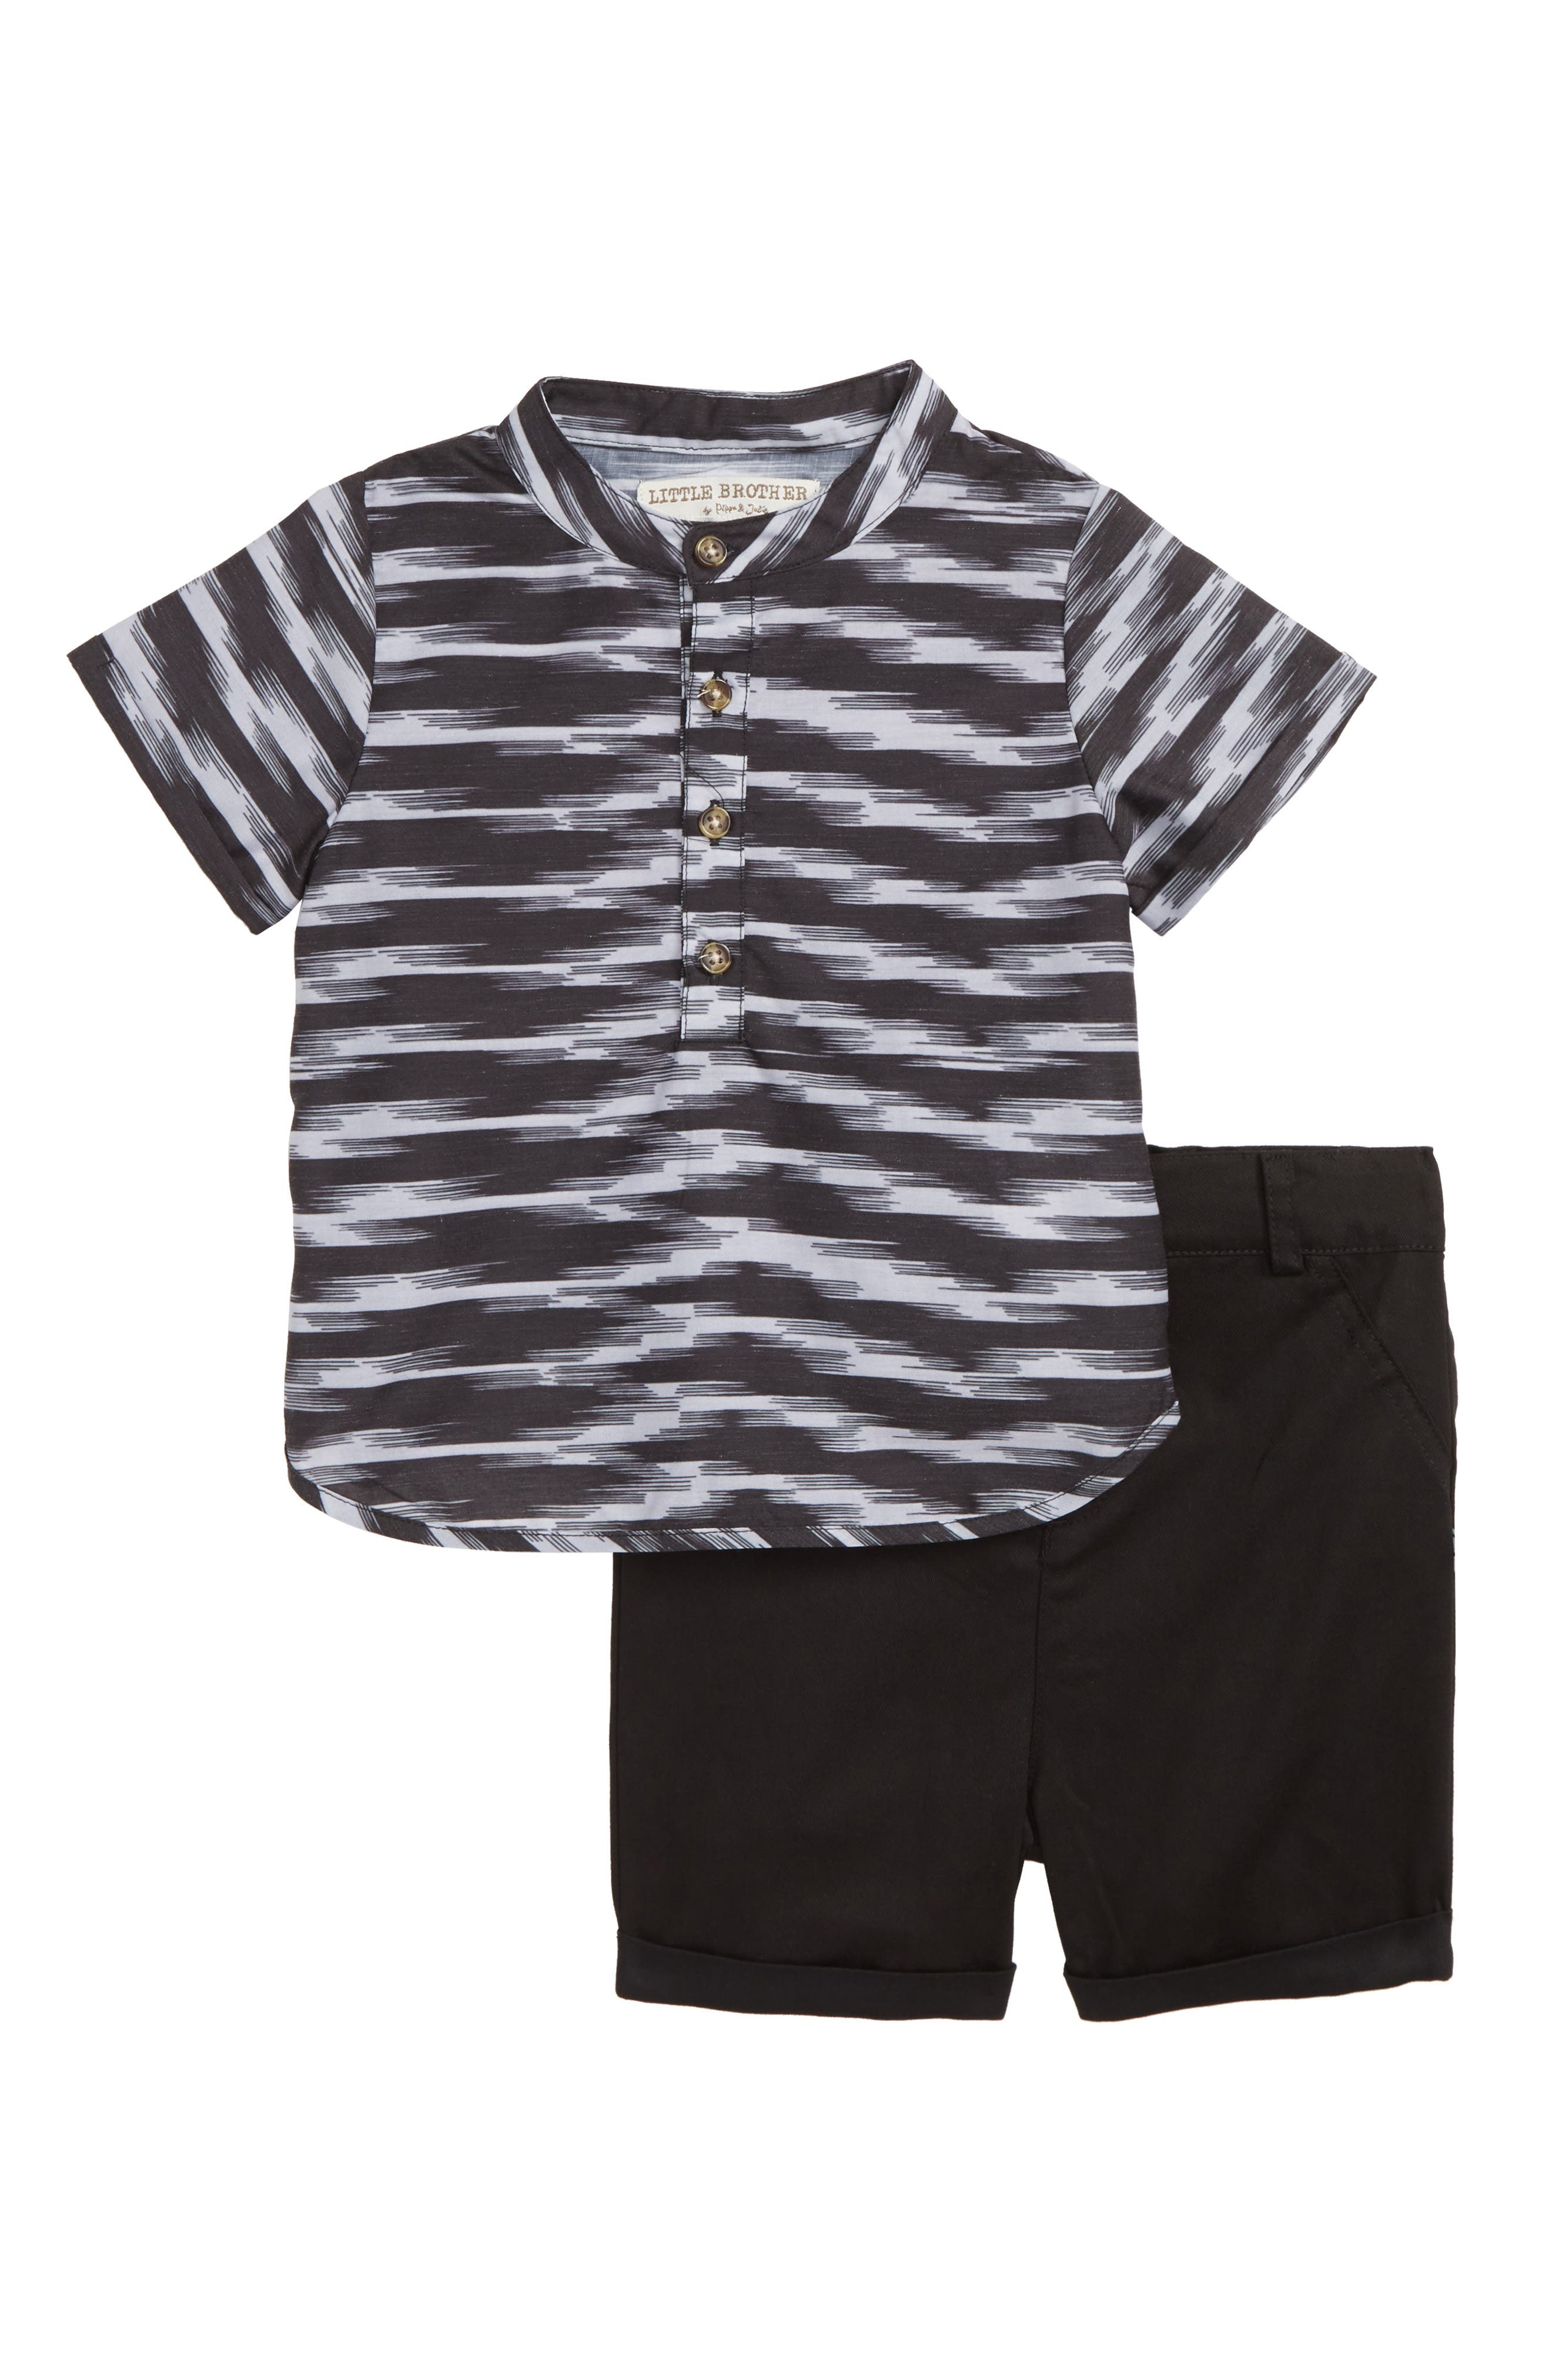 Woven Shirt & Shorts Set,                             Main thumbnail 1, color,                             001